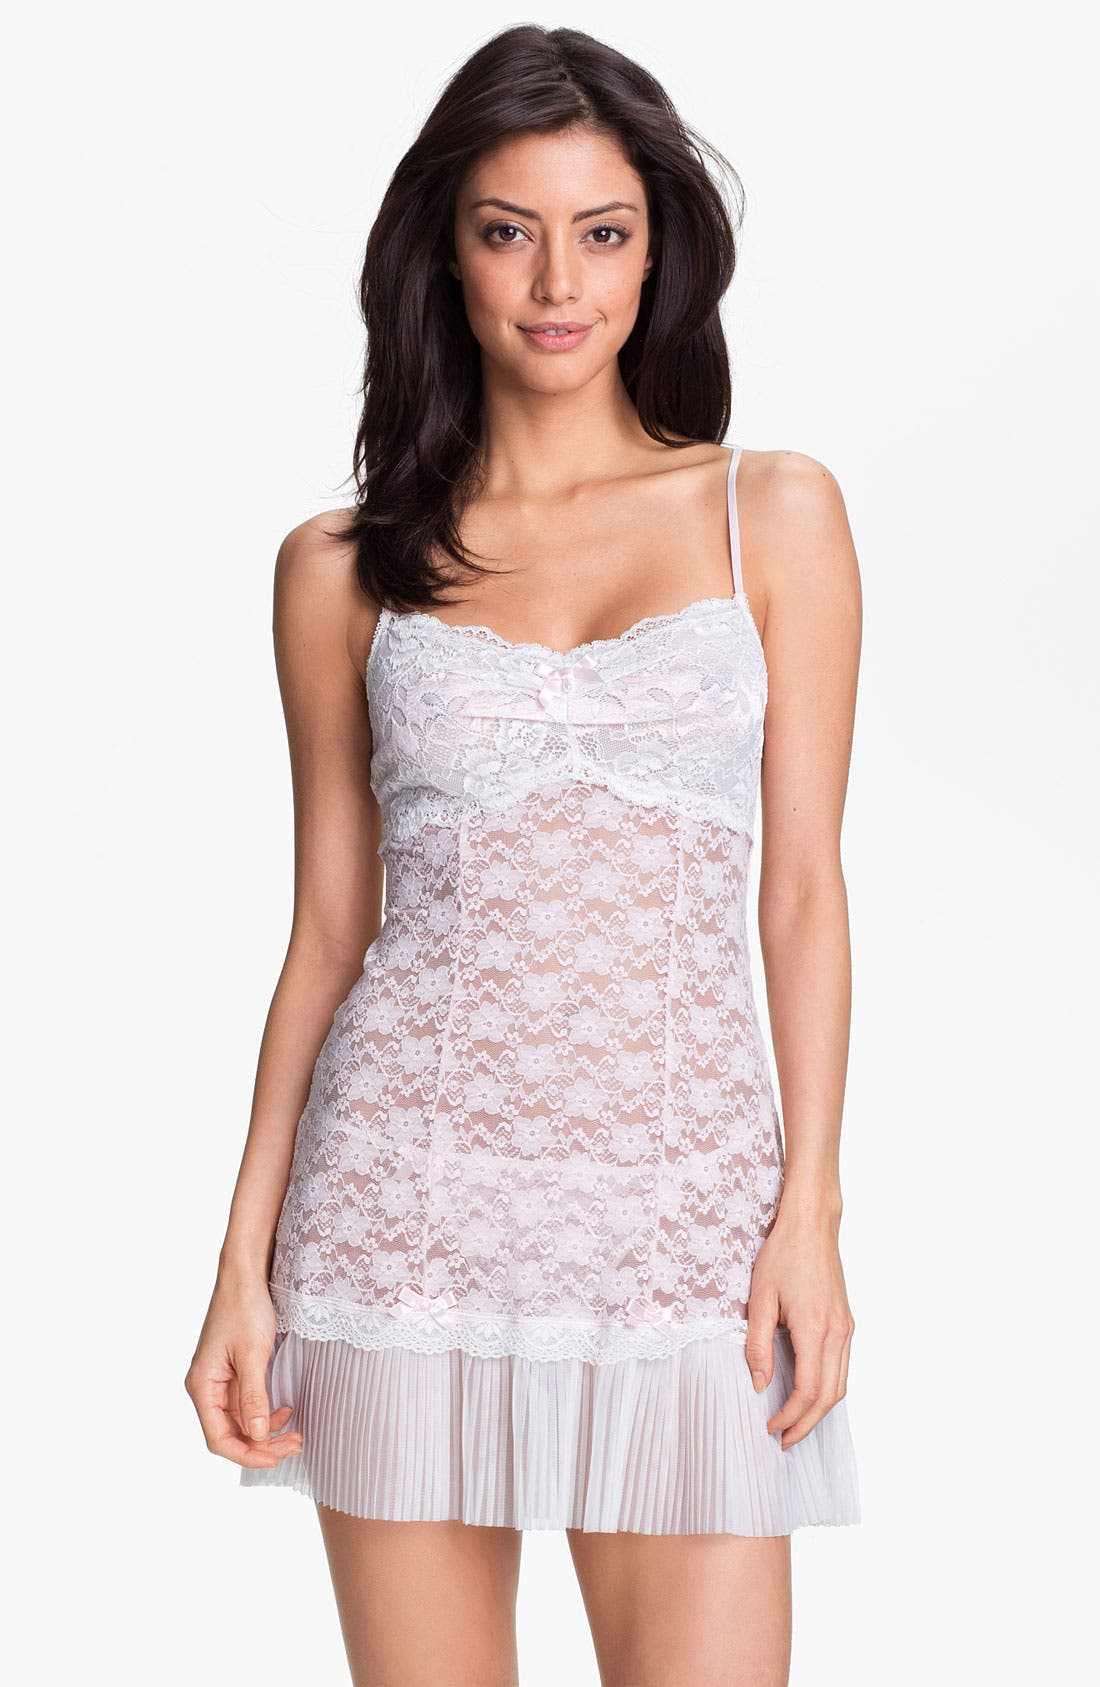 Main Image - In Bloom by Jonquil 'Pretty Baby' Chemise & G-String Set